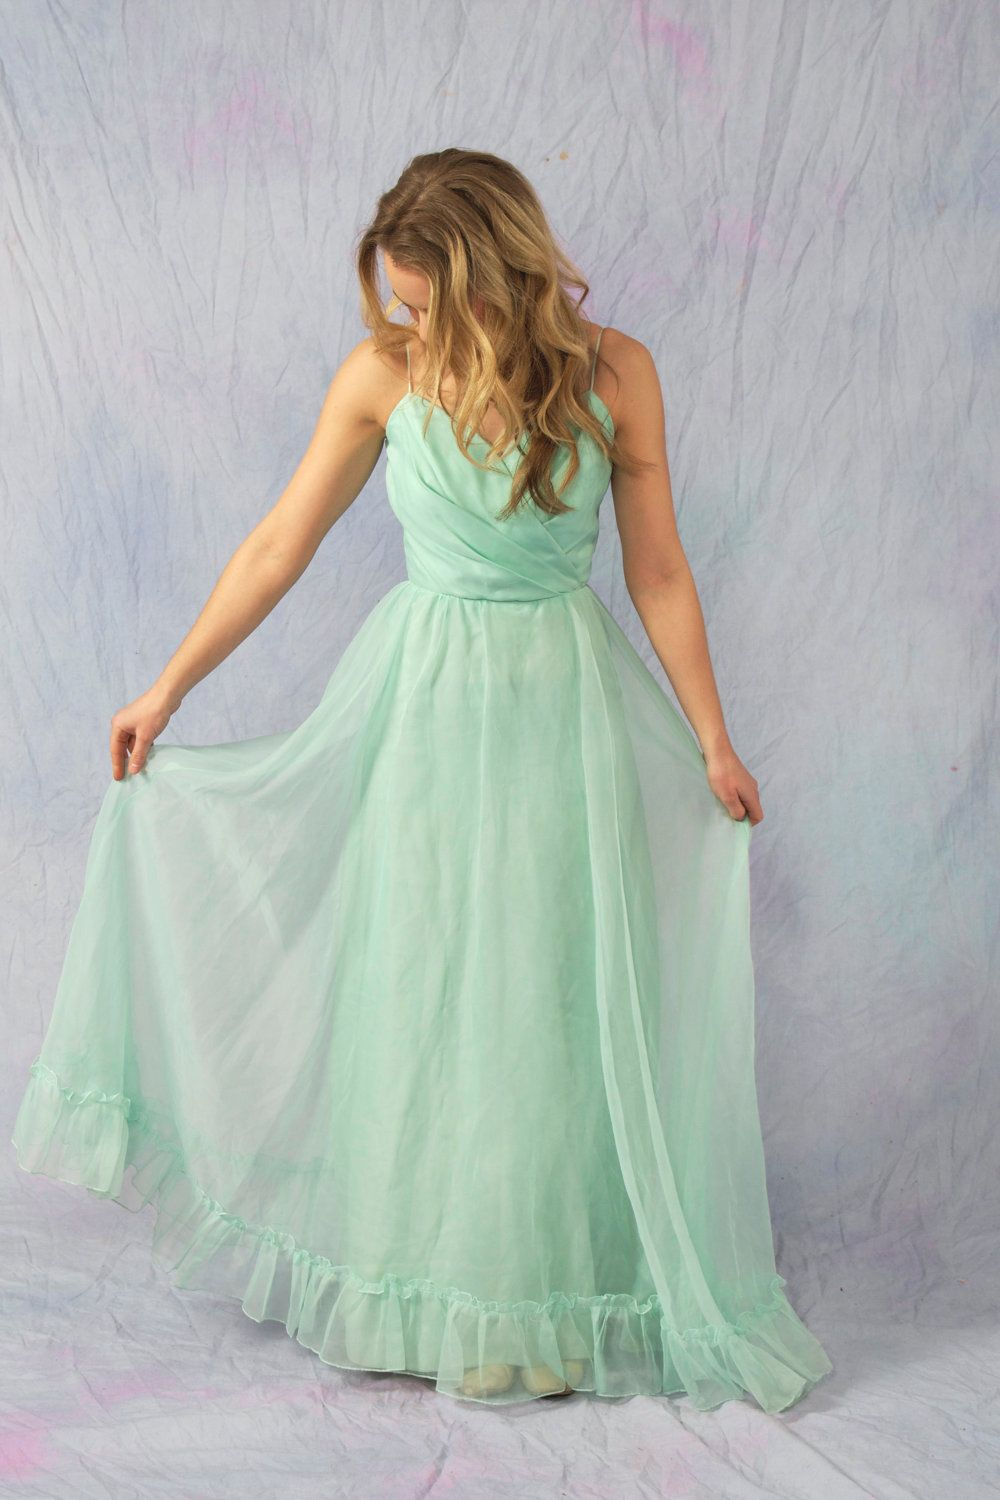 Reserved mint seafoam green vintage bridesmaid party prom long reserved mint seafoam green vintage bridesmaid party prom long dress 7400 ombrellifo Image collections